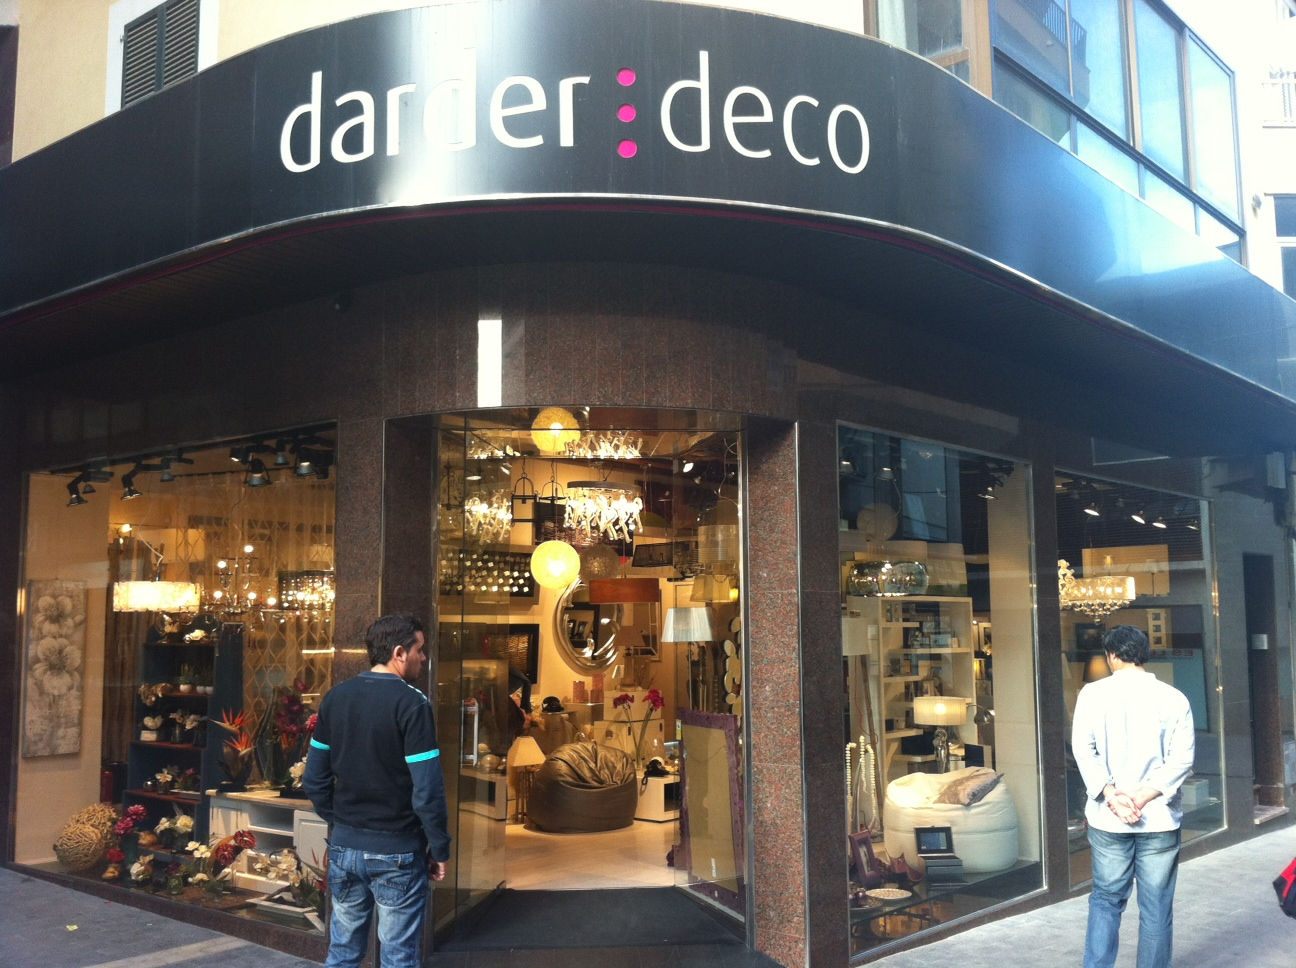 Darder deco decoraci i mobles a inca for Muebles inca